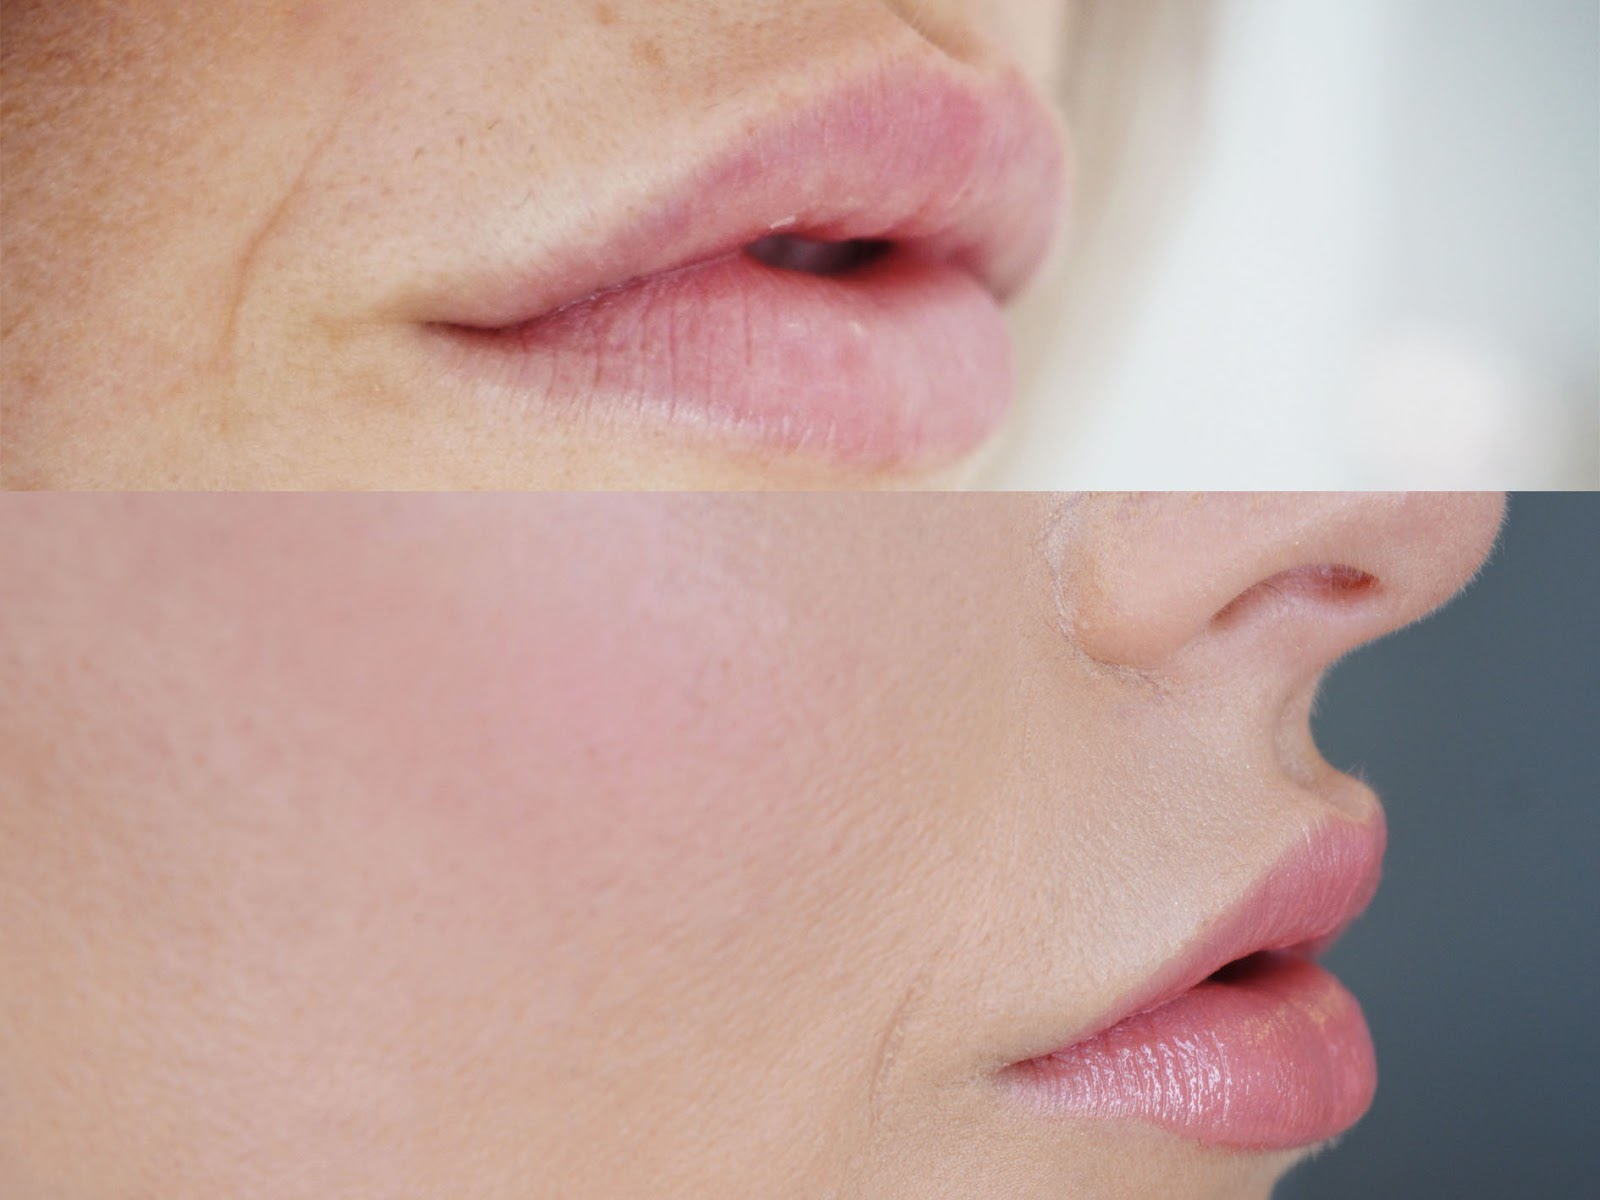 MY LATEST LIP FILLERS BY ASSURE AESTHETICS // NORTH EAST LIP FILLERS